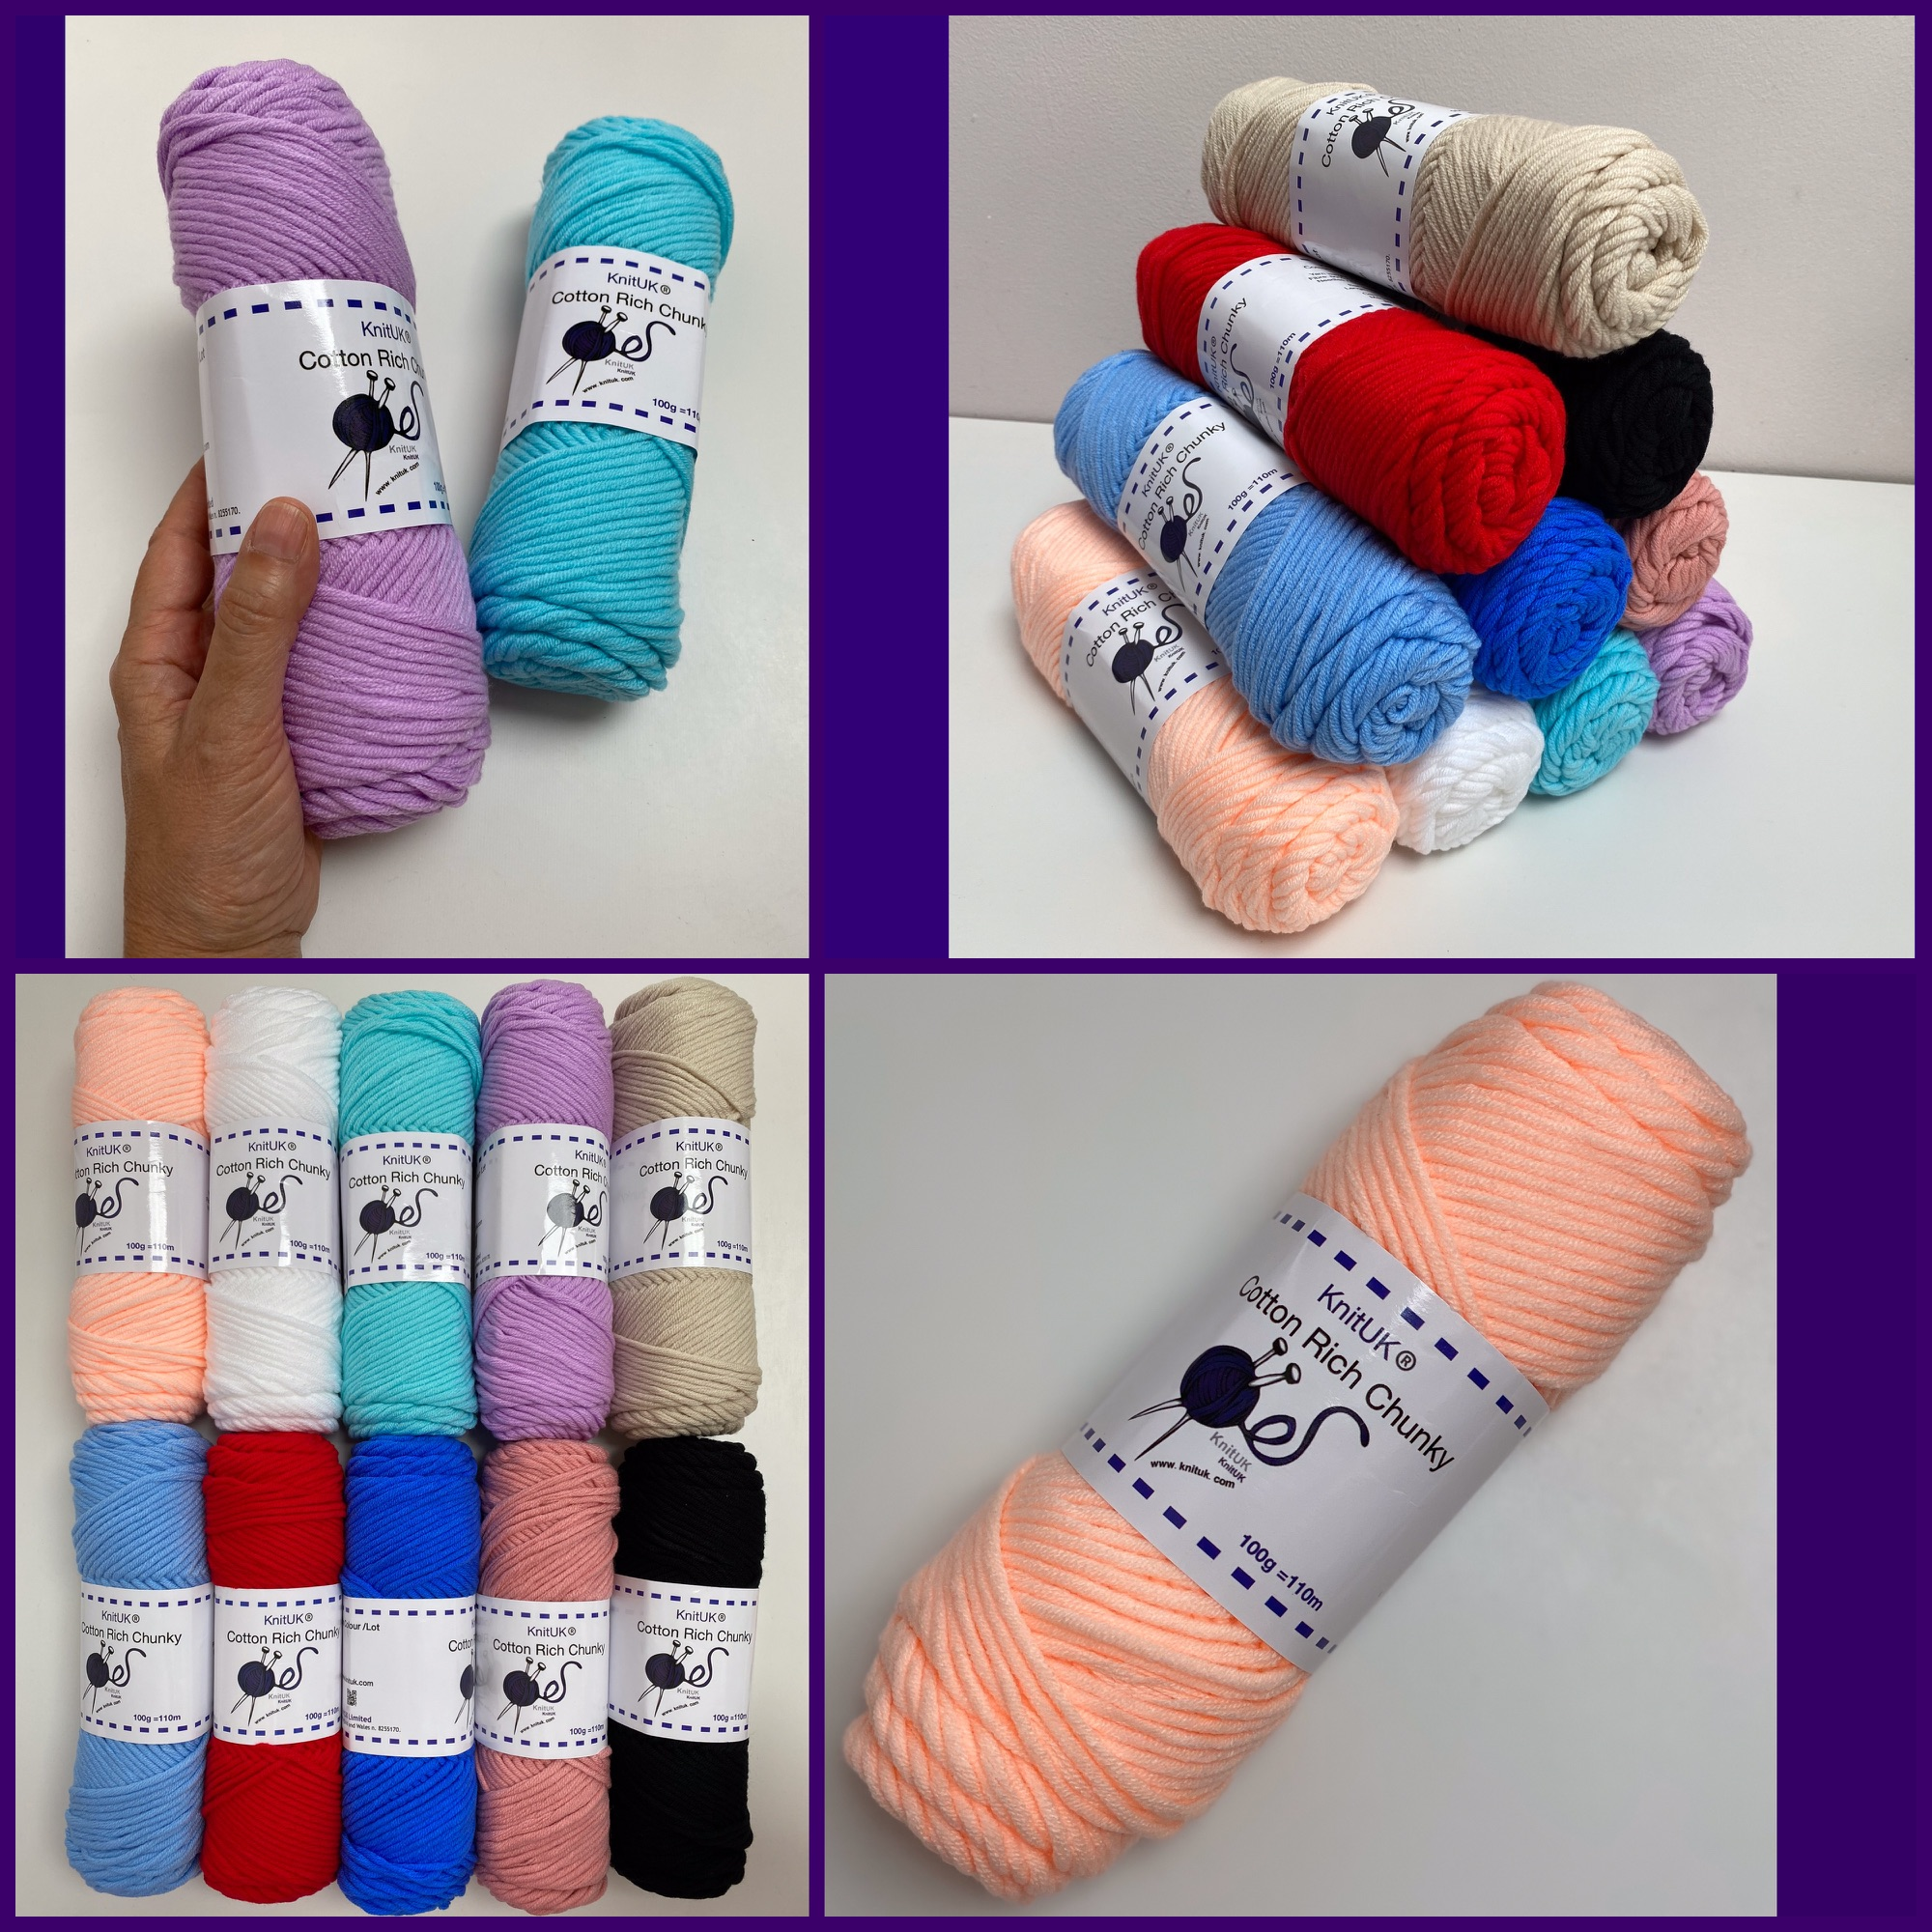 knituk cotton rich chunky knitting loom crochet yarn 4 pictures